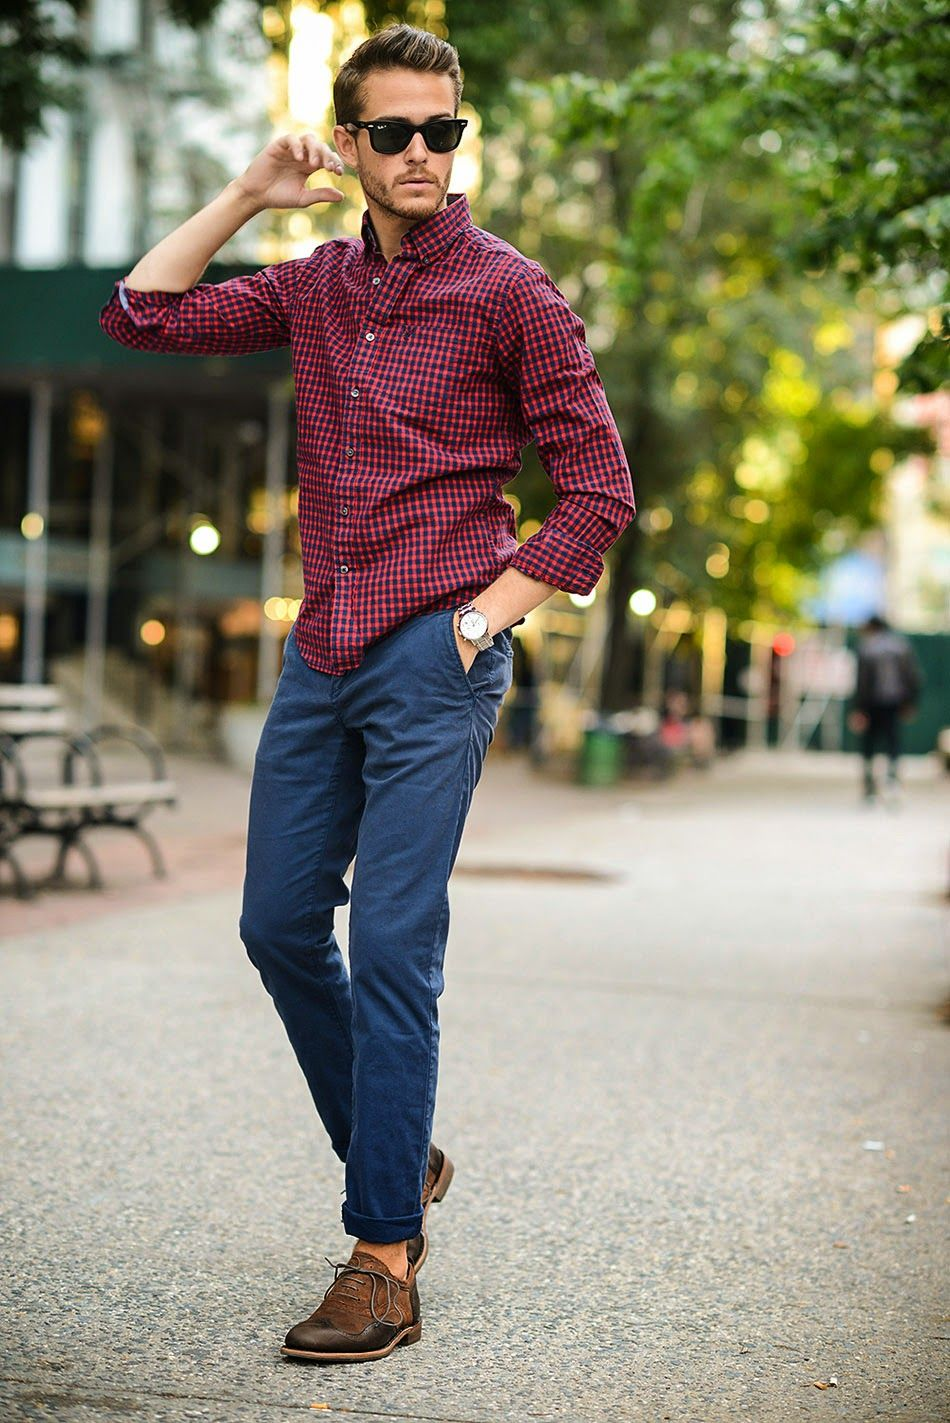 Men's blue pants casual outfit | Mens outfits, Mens fashion